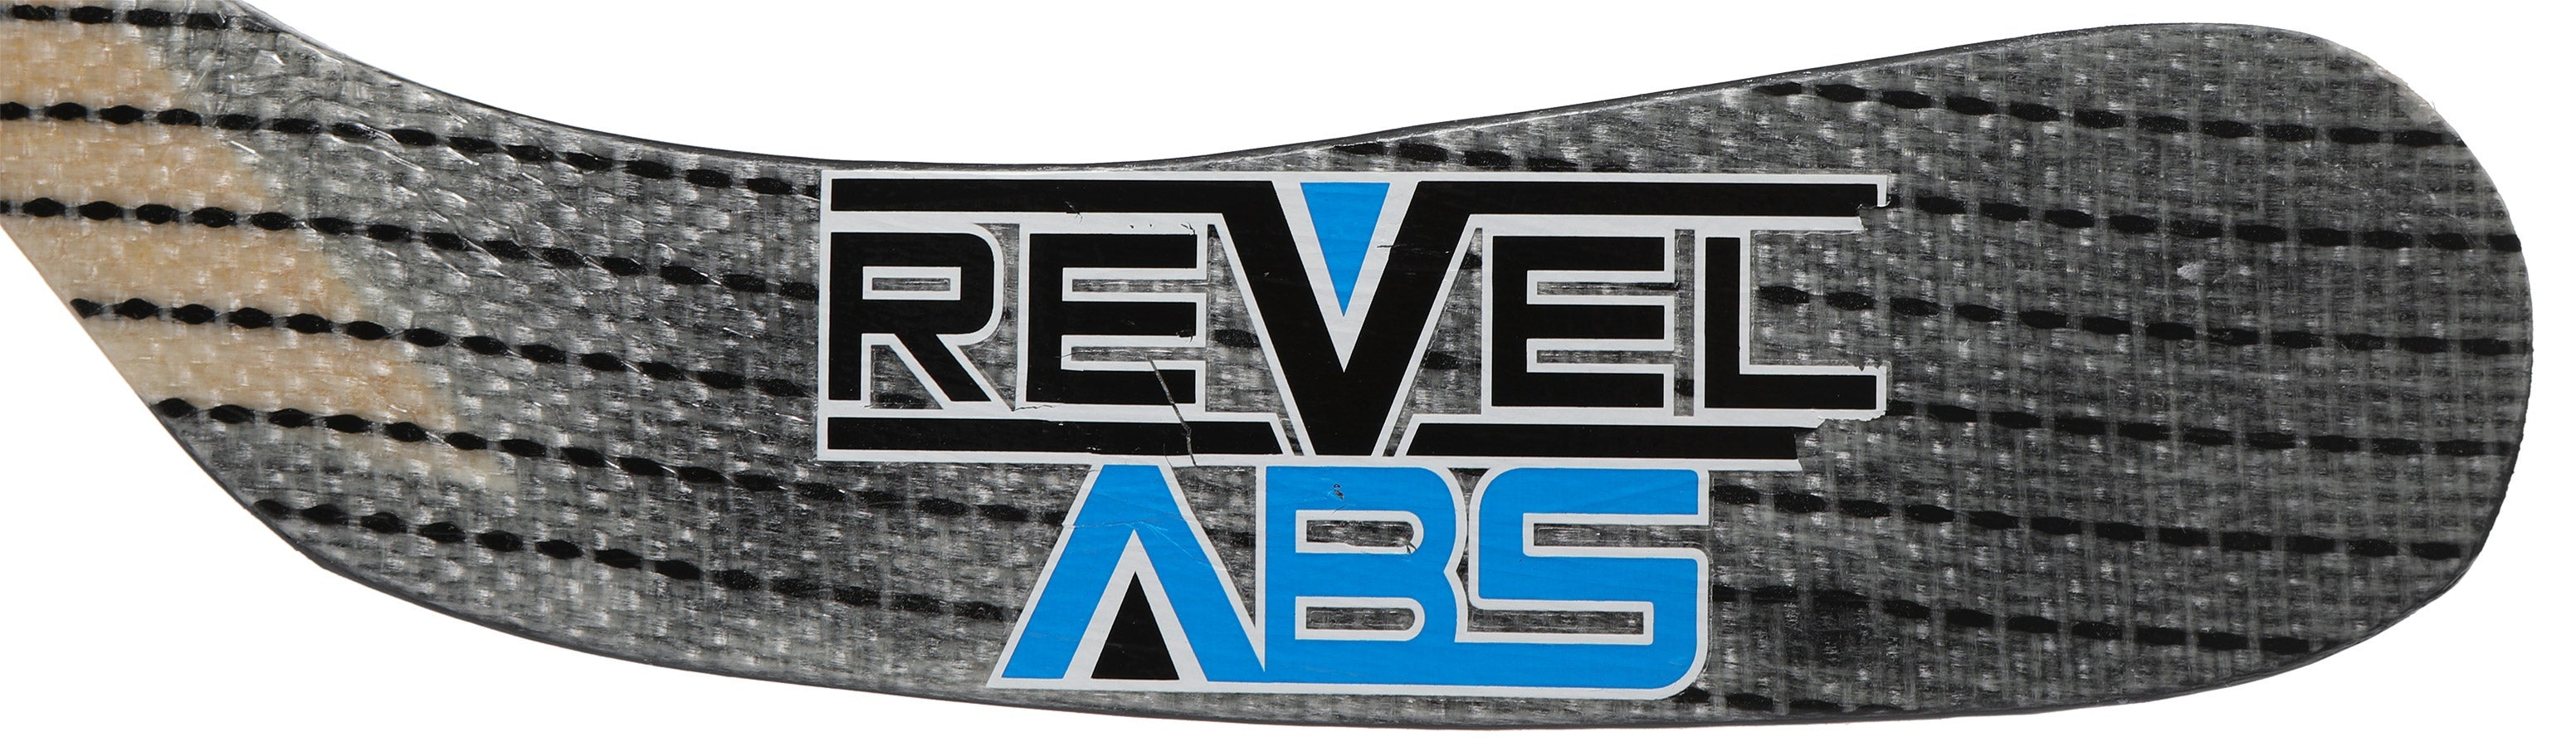 Baston Alkali Revel ABS Hockey Stick Niños - Doberman's Skate Shop - Doberman's Skate Shop